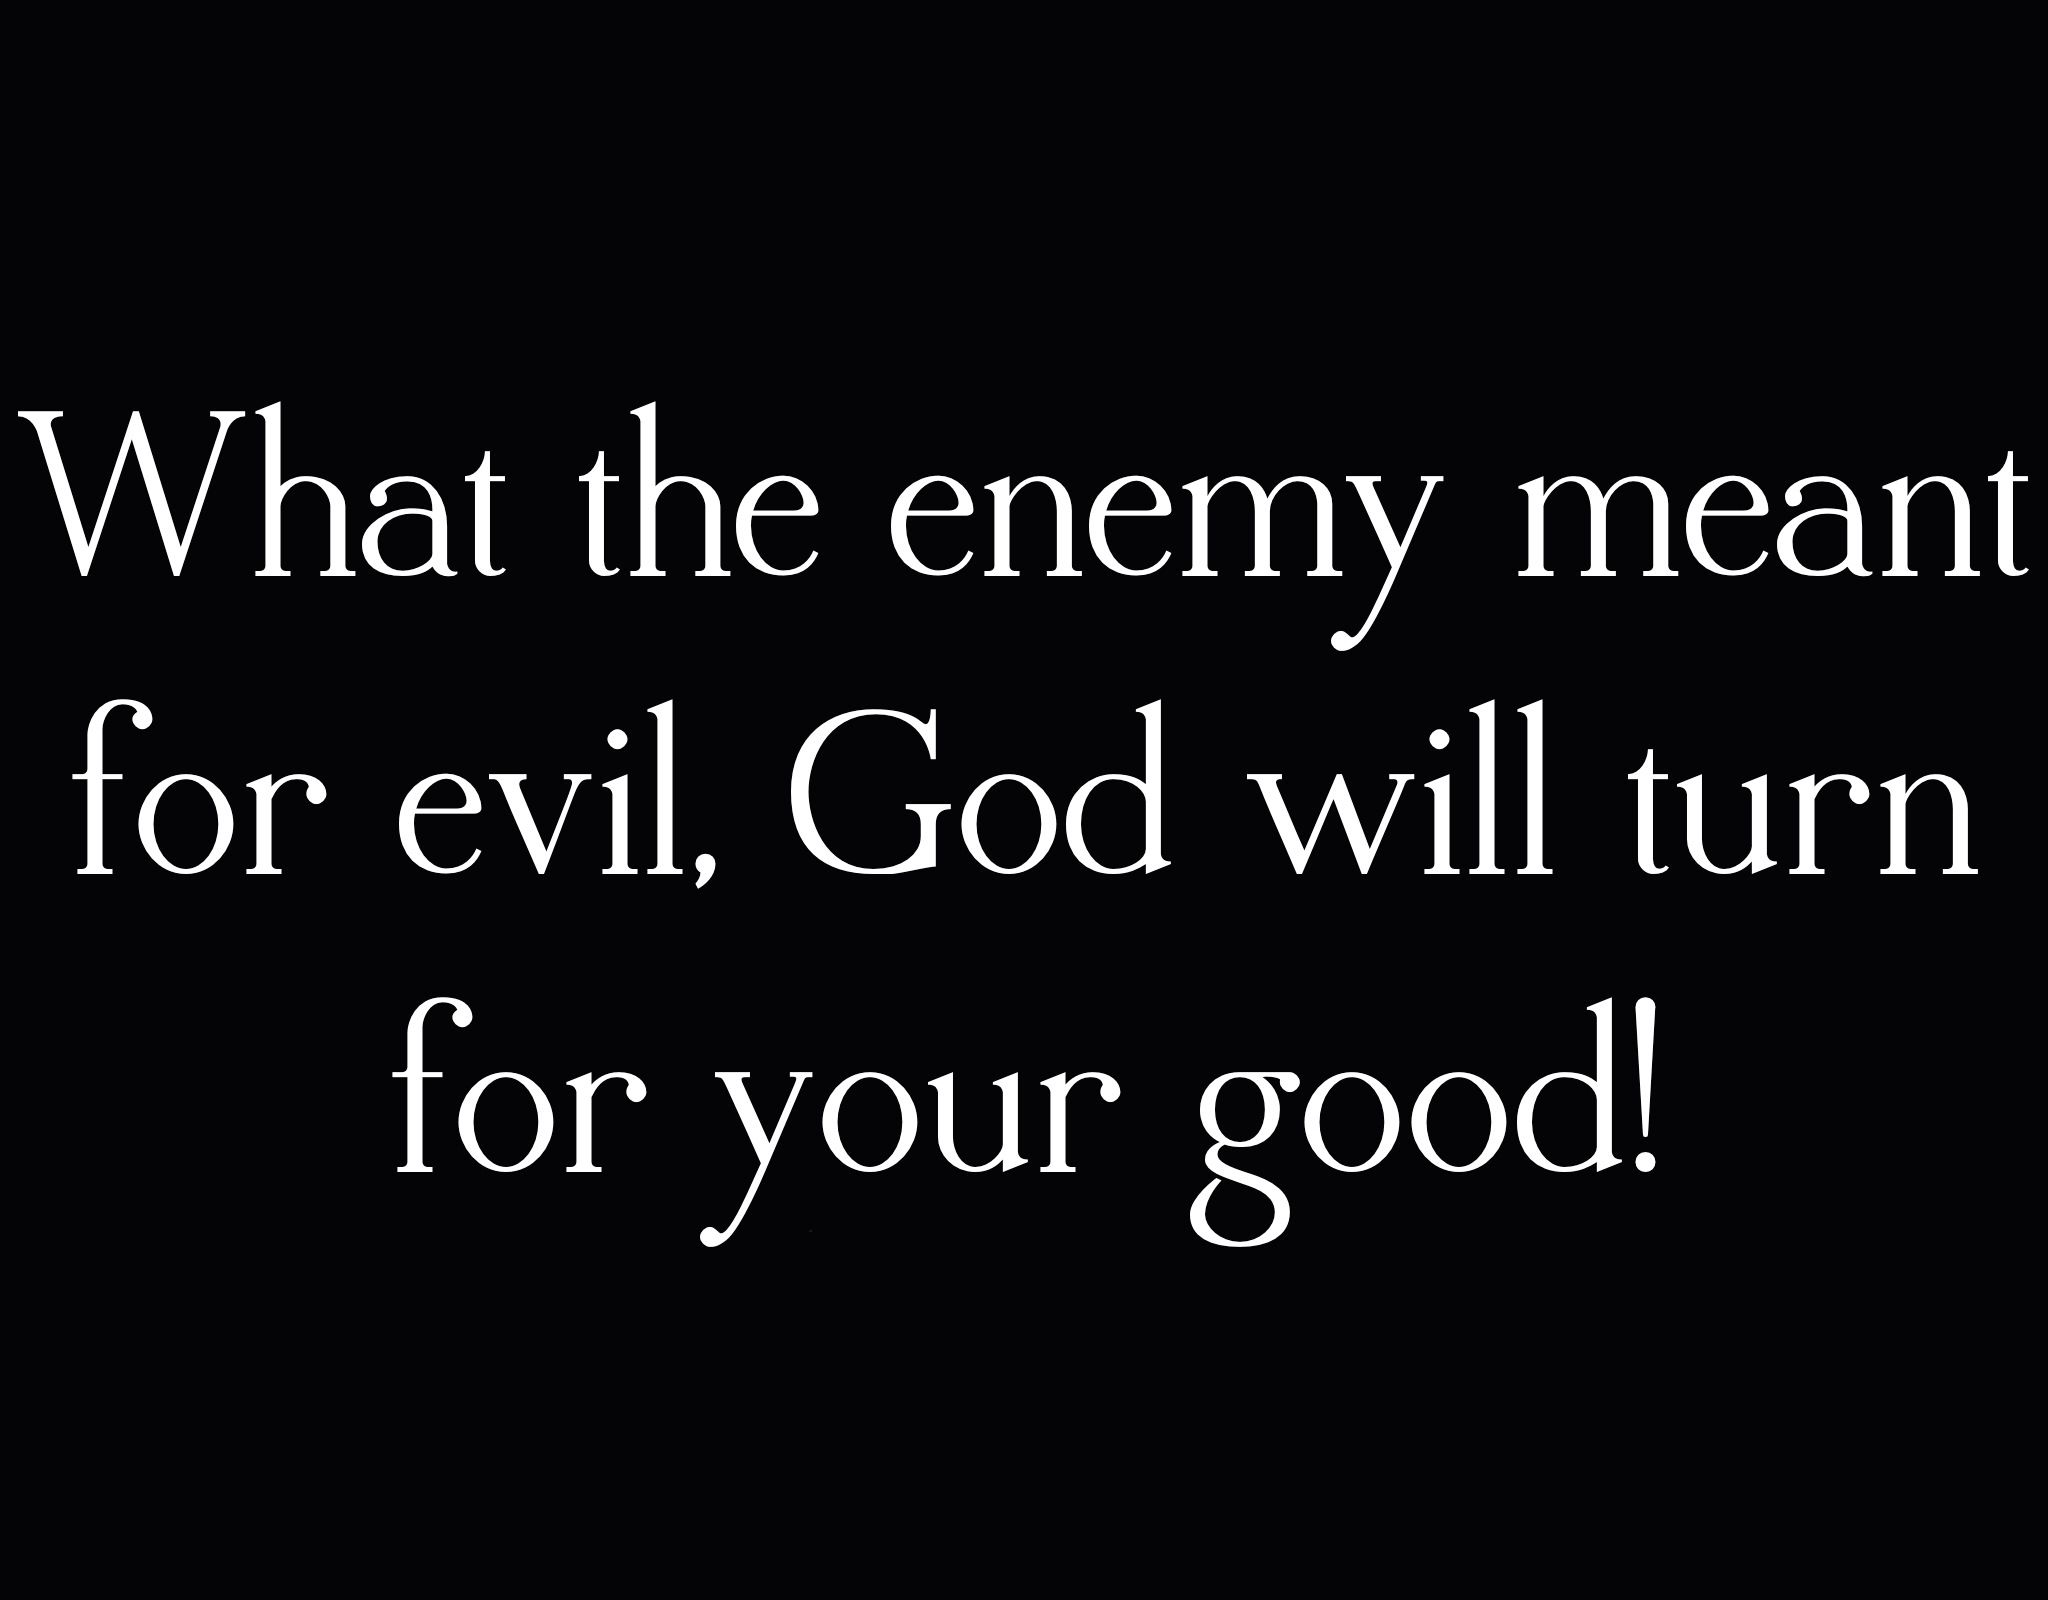 WHAT SATAN MEANT FOR EVIL GOD MEANT FOR GOOD.